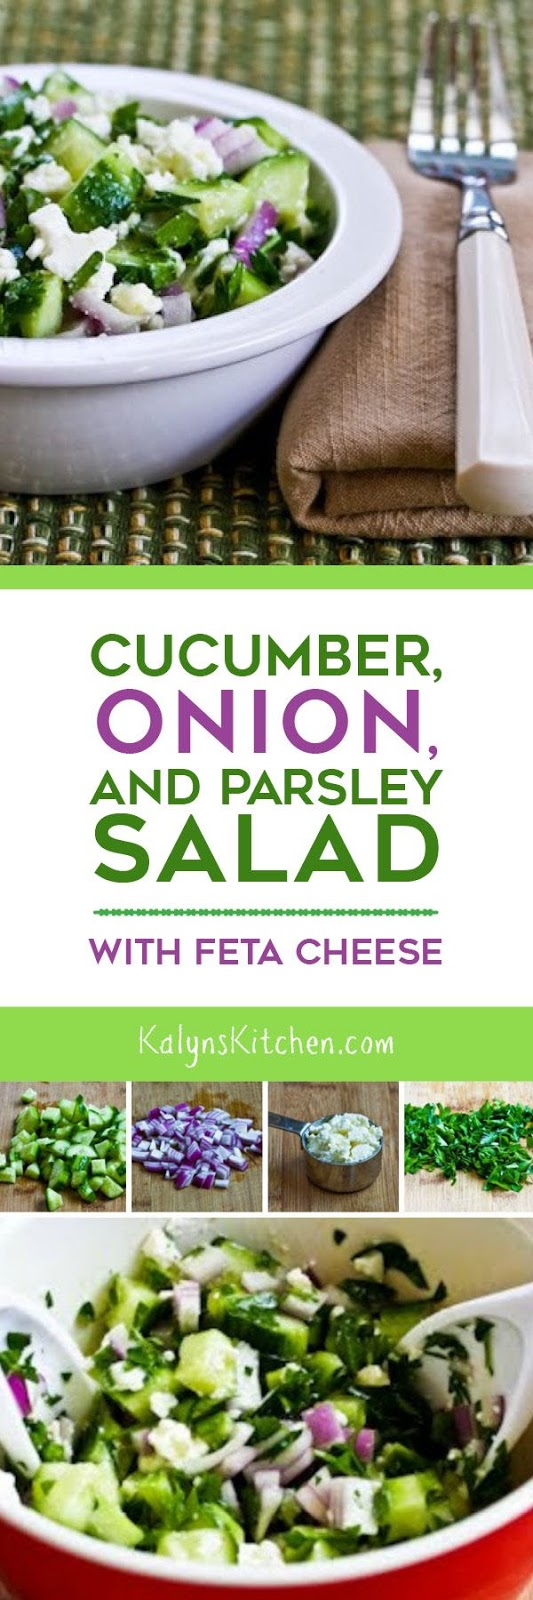 Chopped Tomato And Cucumber Salad Recipe With Mint, Feta, Lemon, And ...